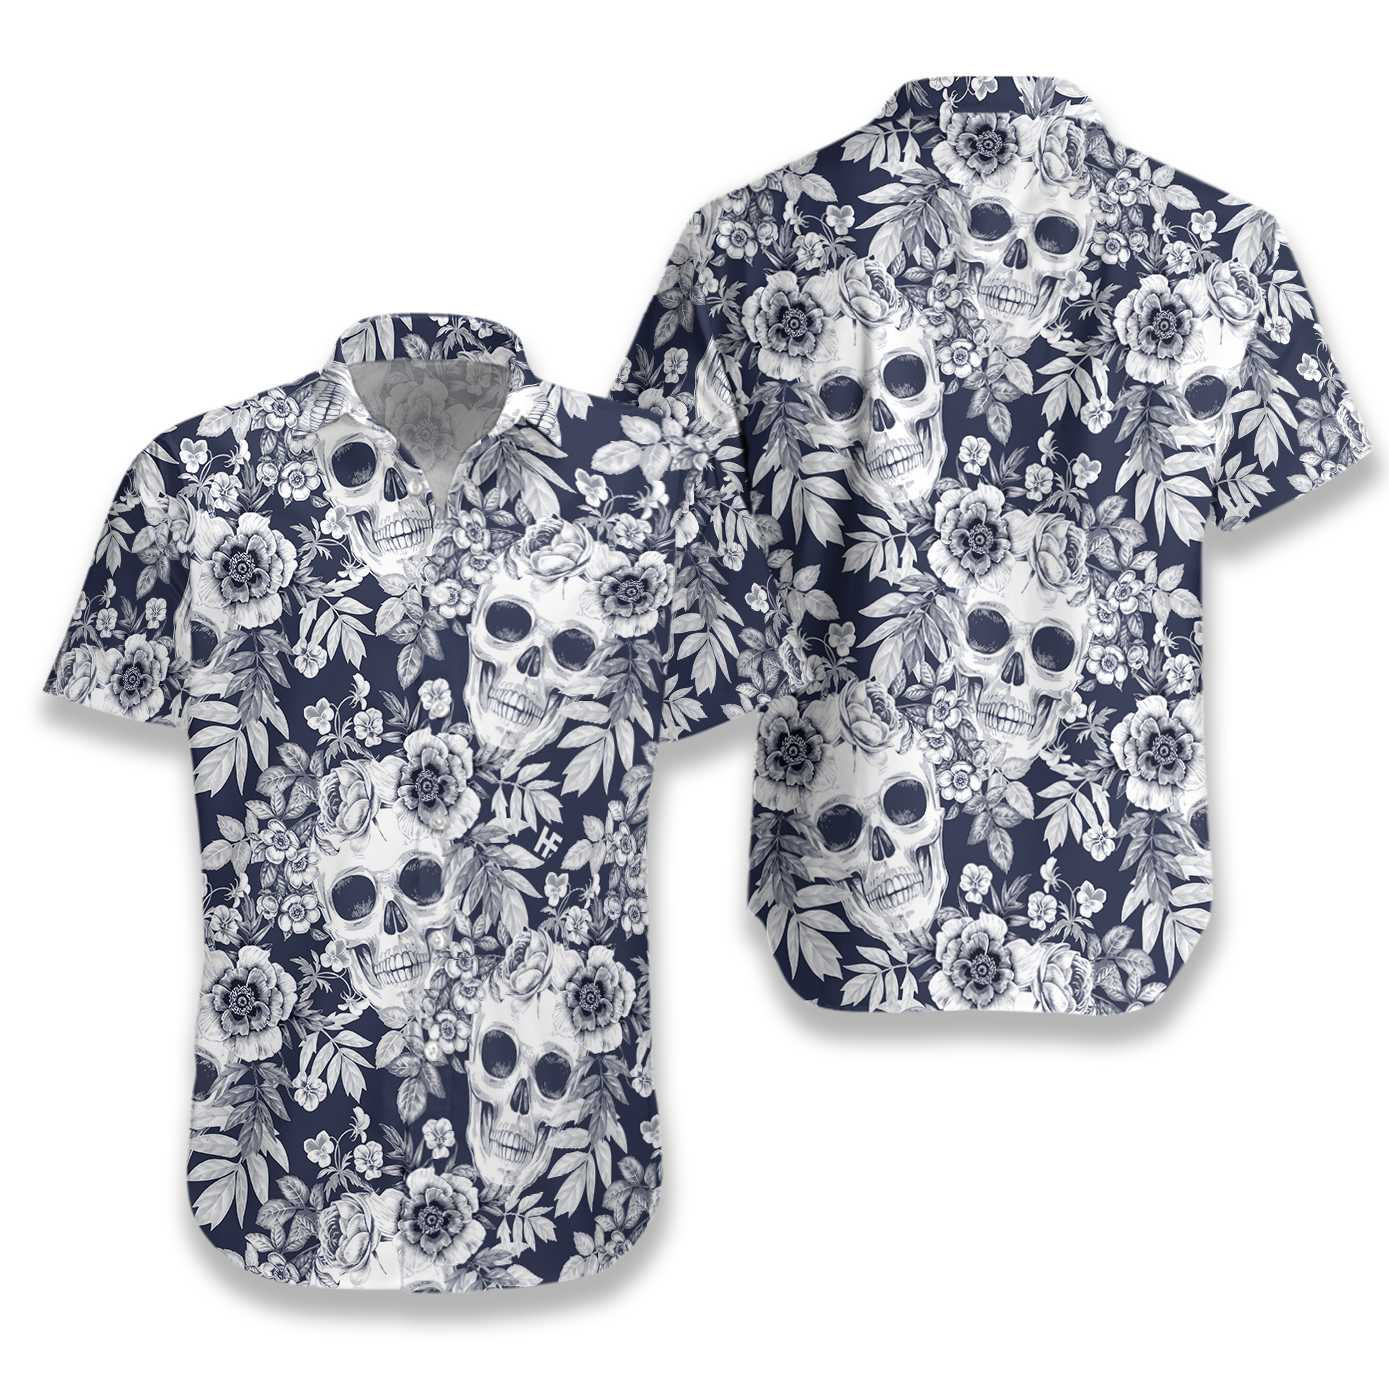 Wreaths Of Garden Flowers And Skulls EZ22 2810 Hawaiian Shirt